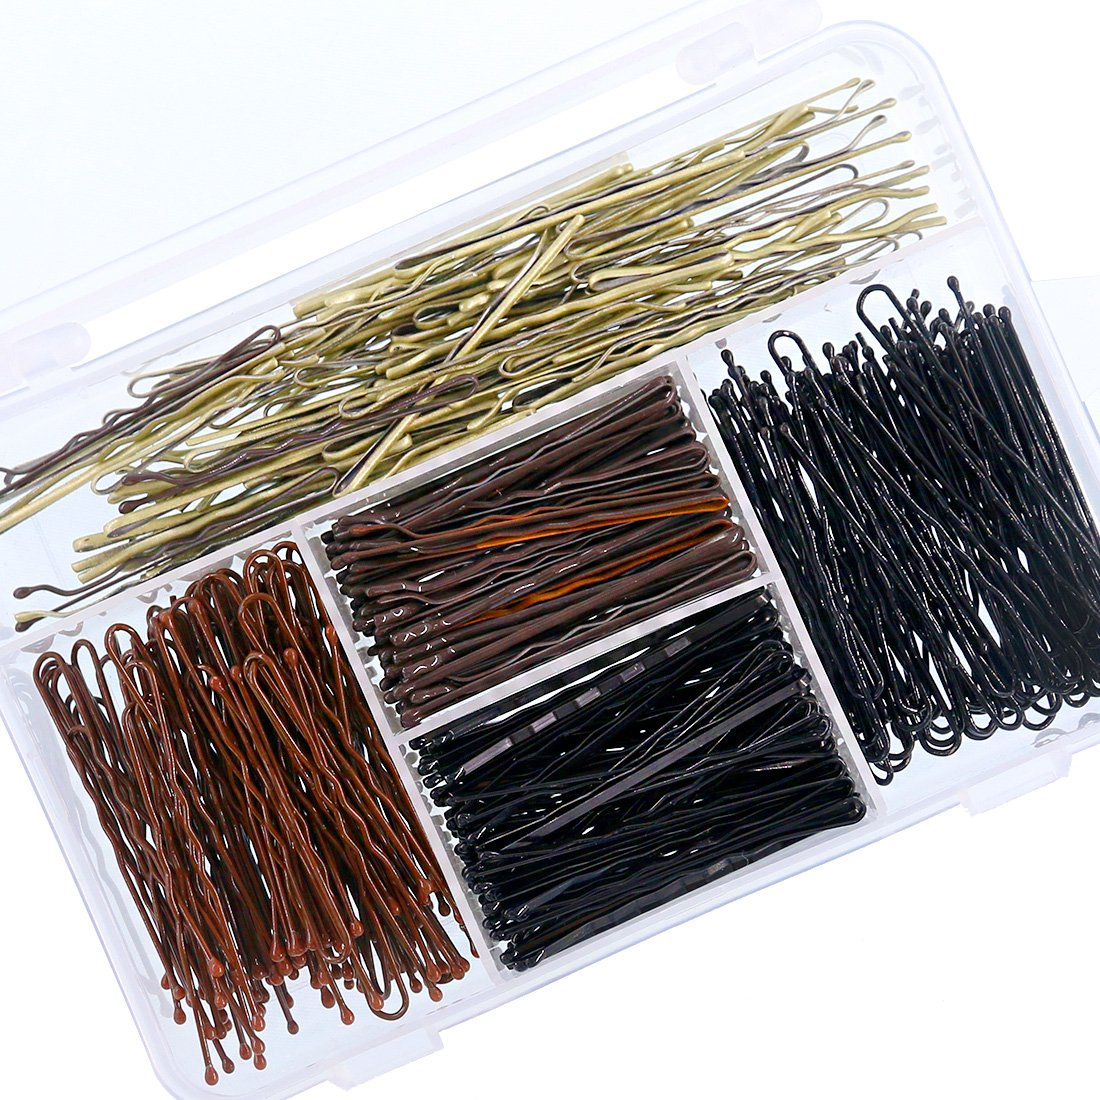 Swpeet 360 Pieces 2 Styles Hair Pins Kit, Including 216Pcs Bobby Pins and 144Pcs U Hair Pins Hair Clips with Storage Box for Girls and Women, Gold,Brown and Black by Swpeet (Image #4)